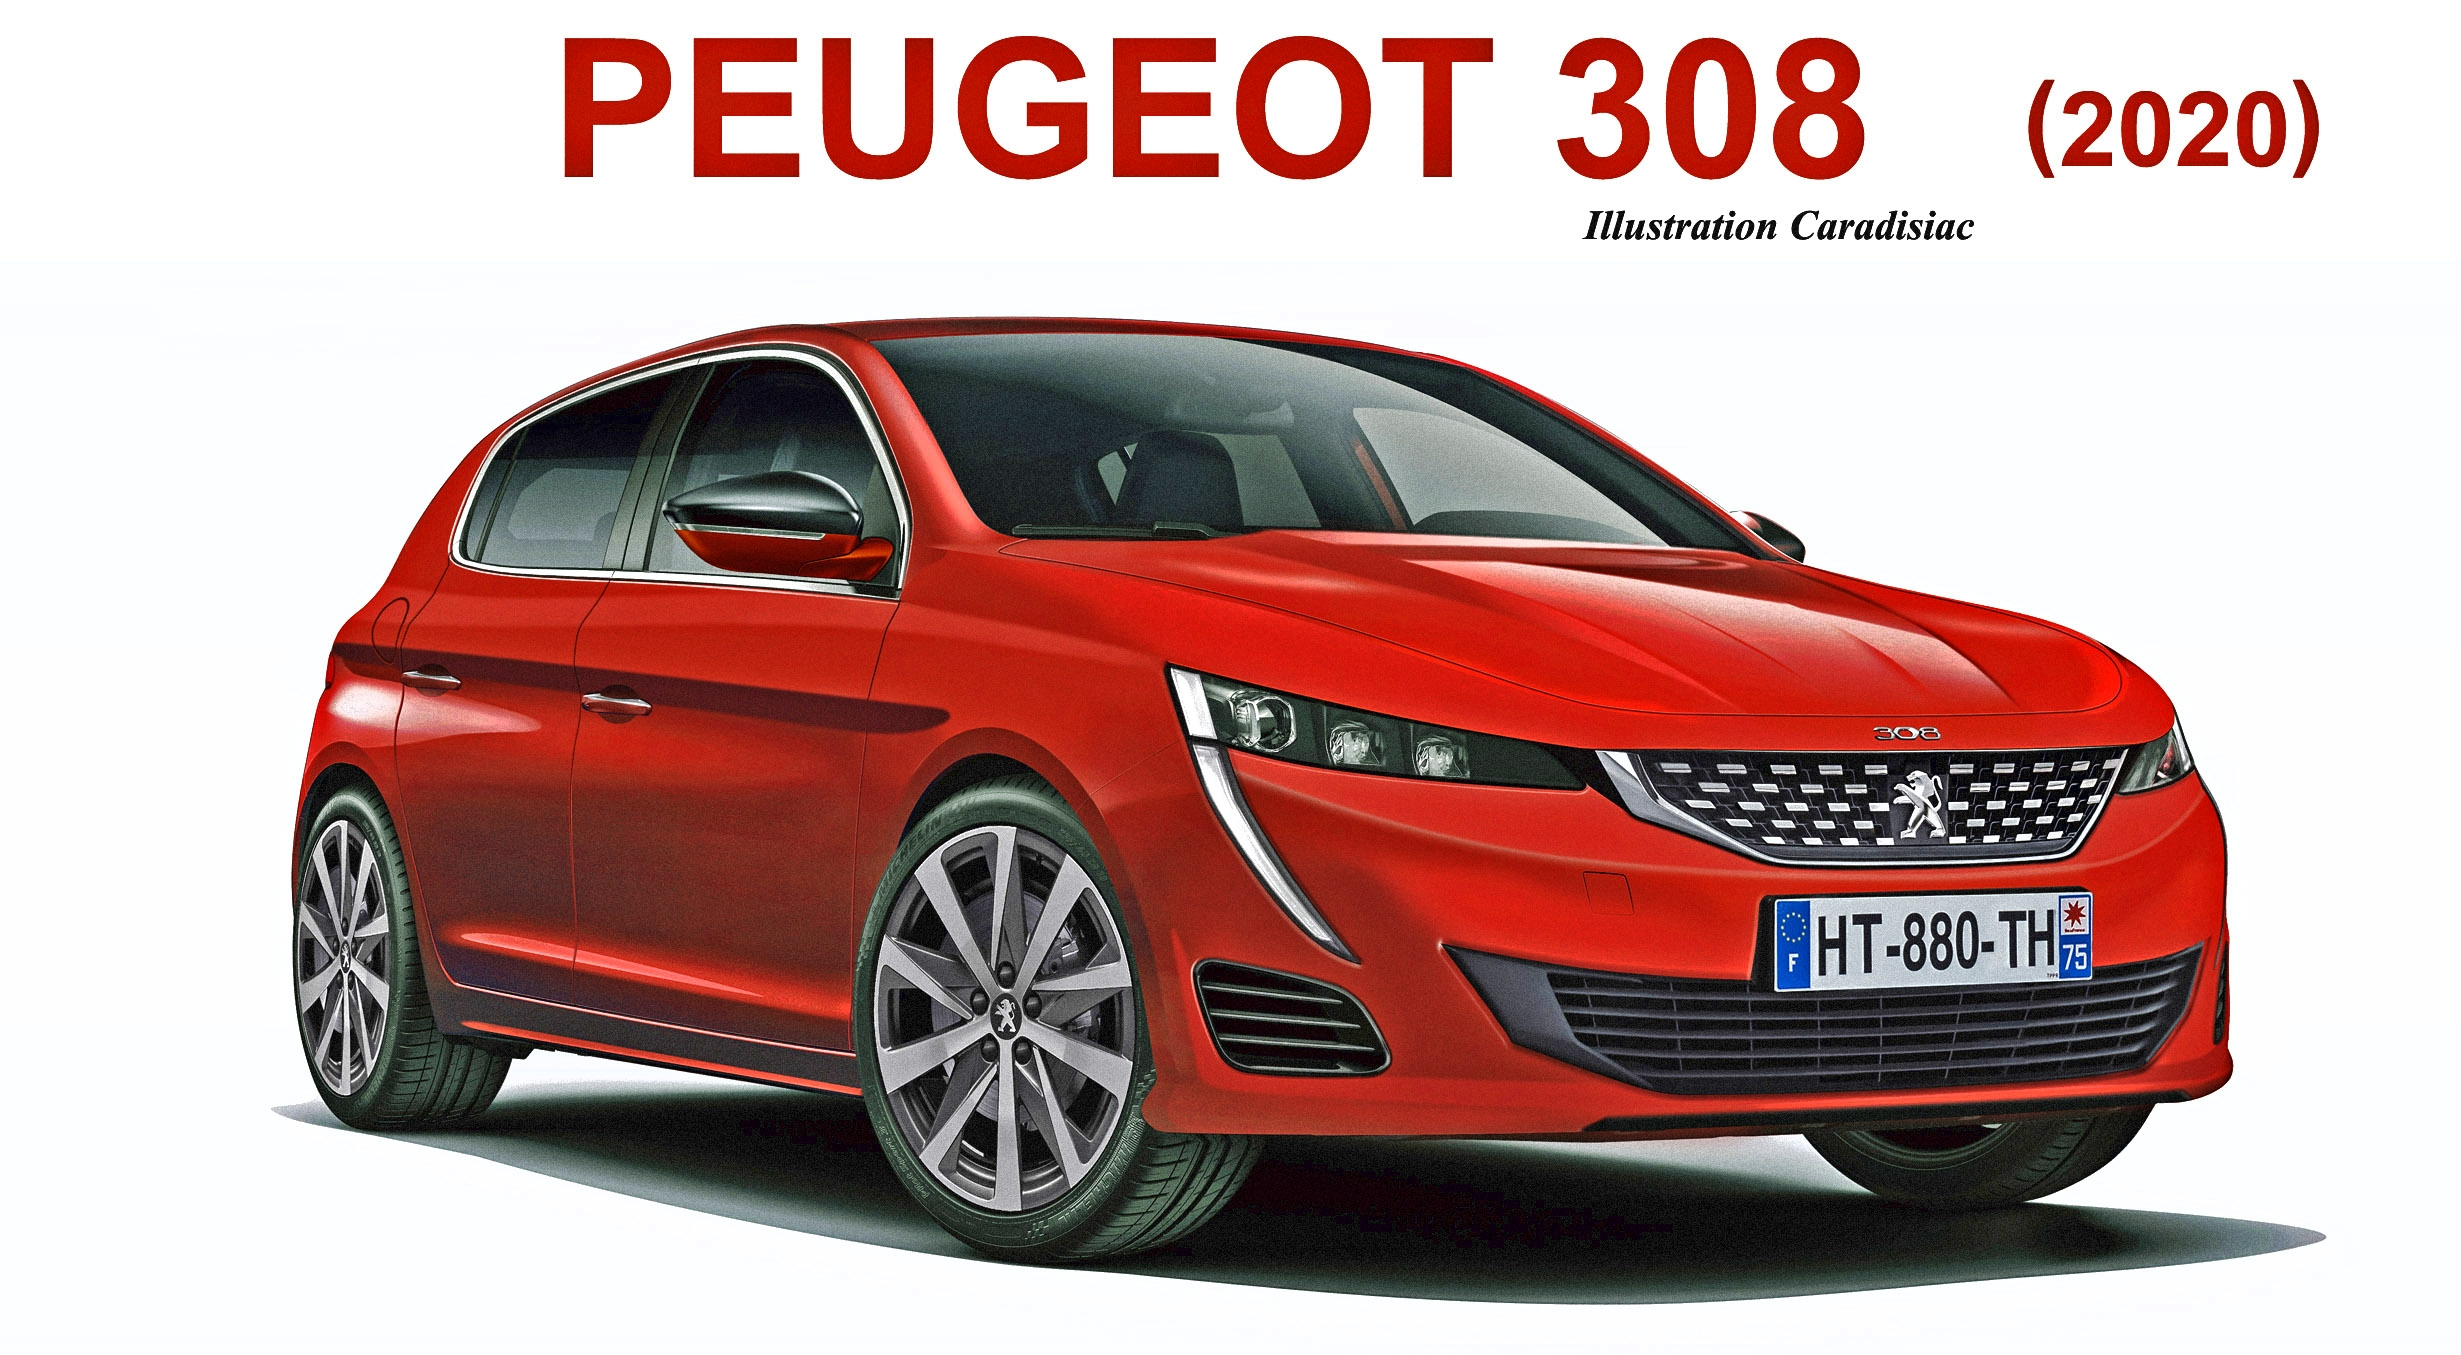 nouvelle peugeot 308 elle arrive en 2020. Black Bedroom Furniture Sets. Home Design Ideas